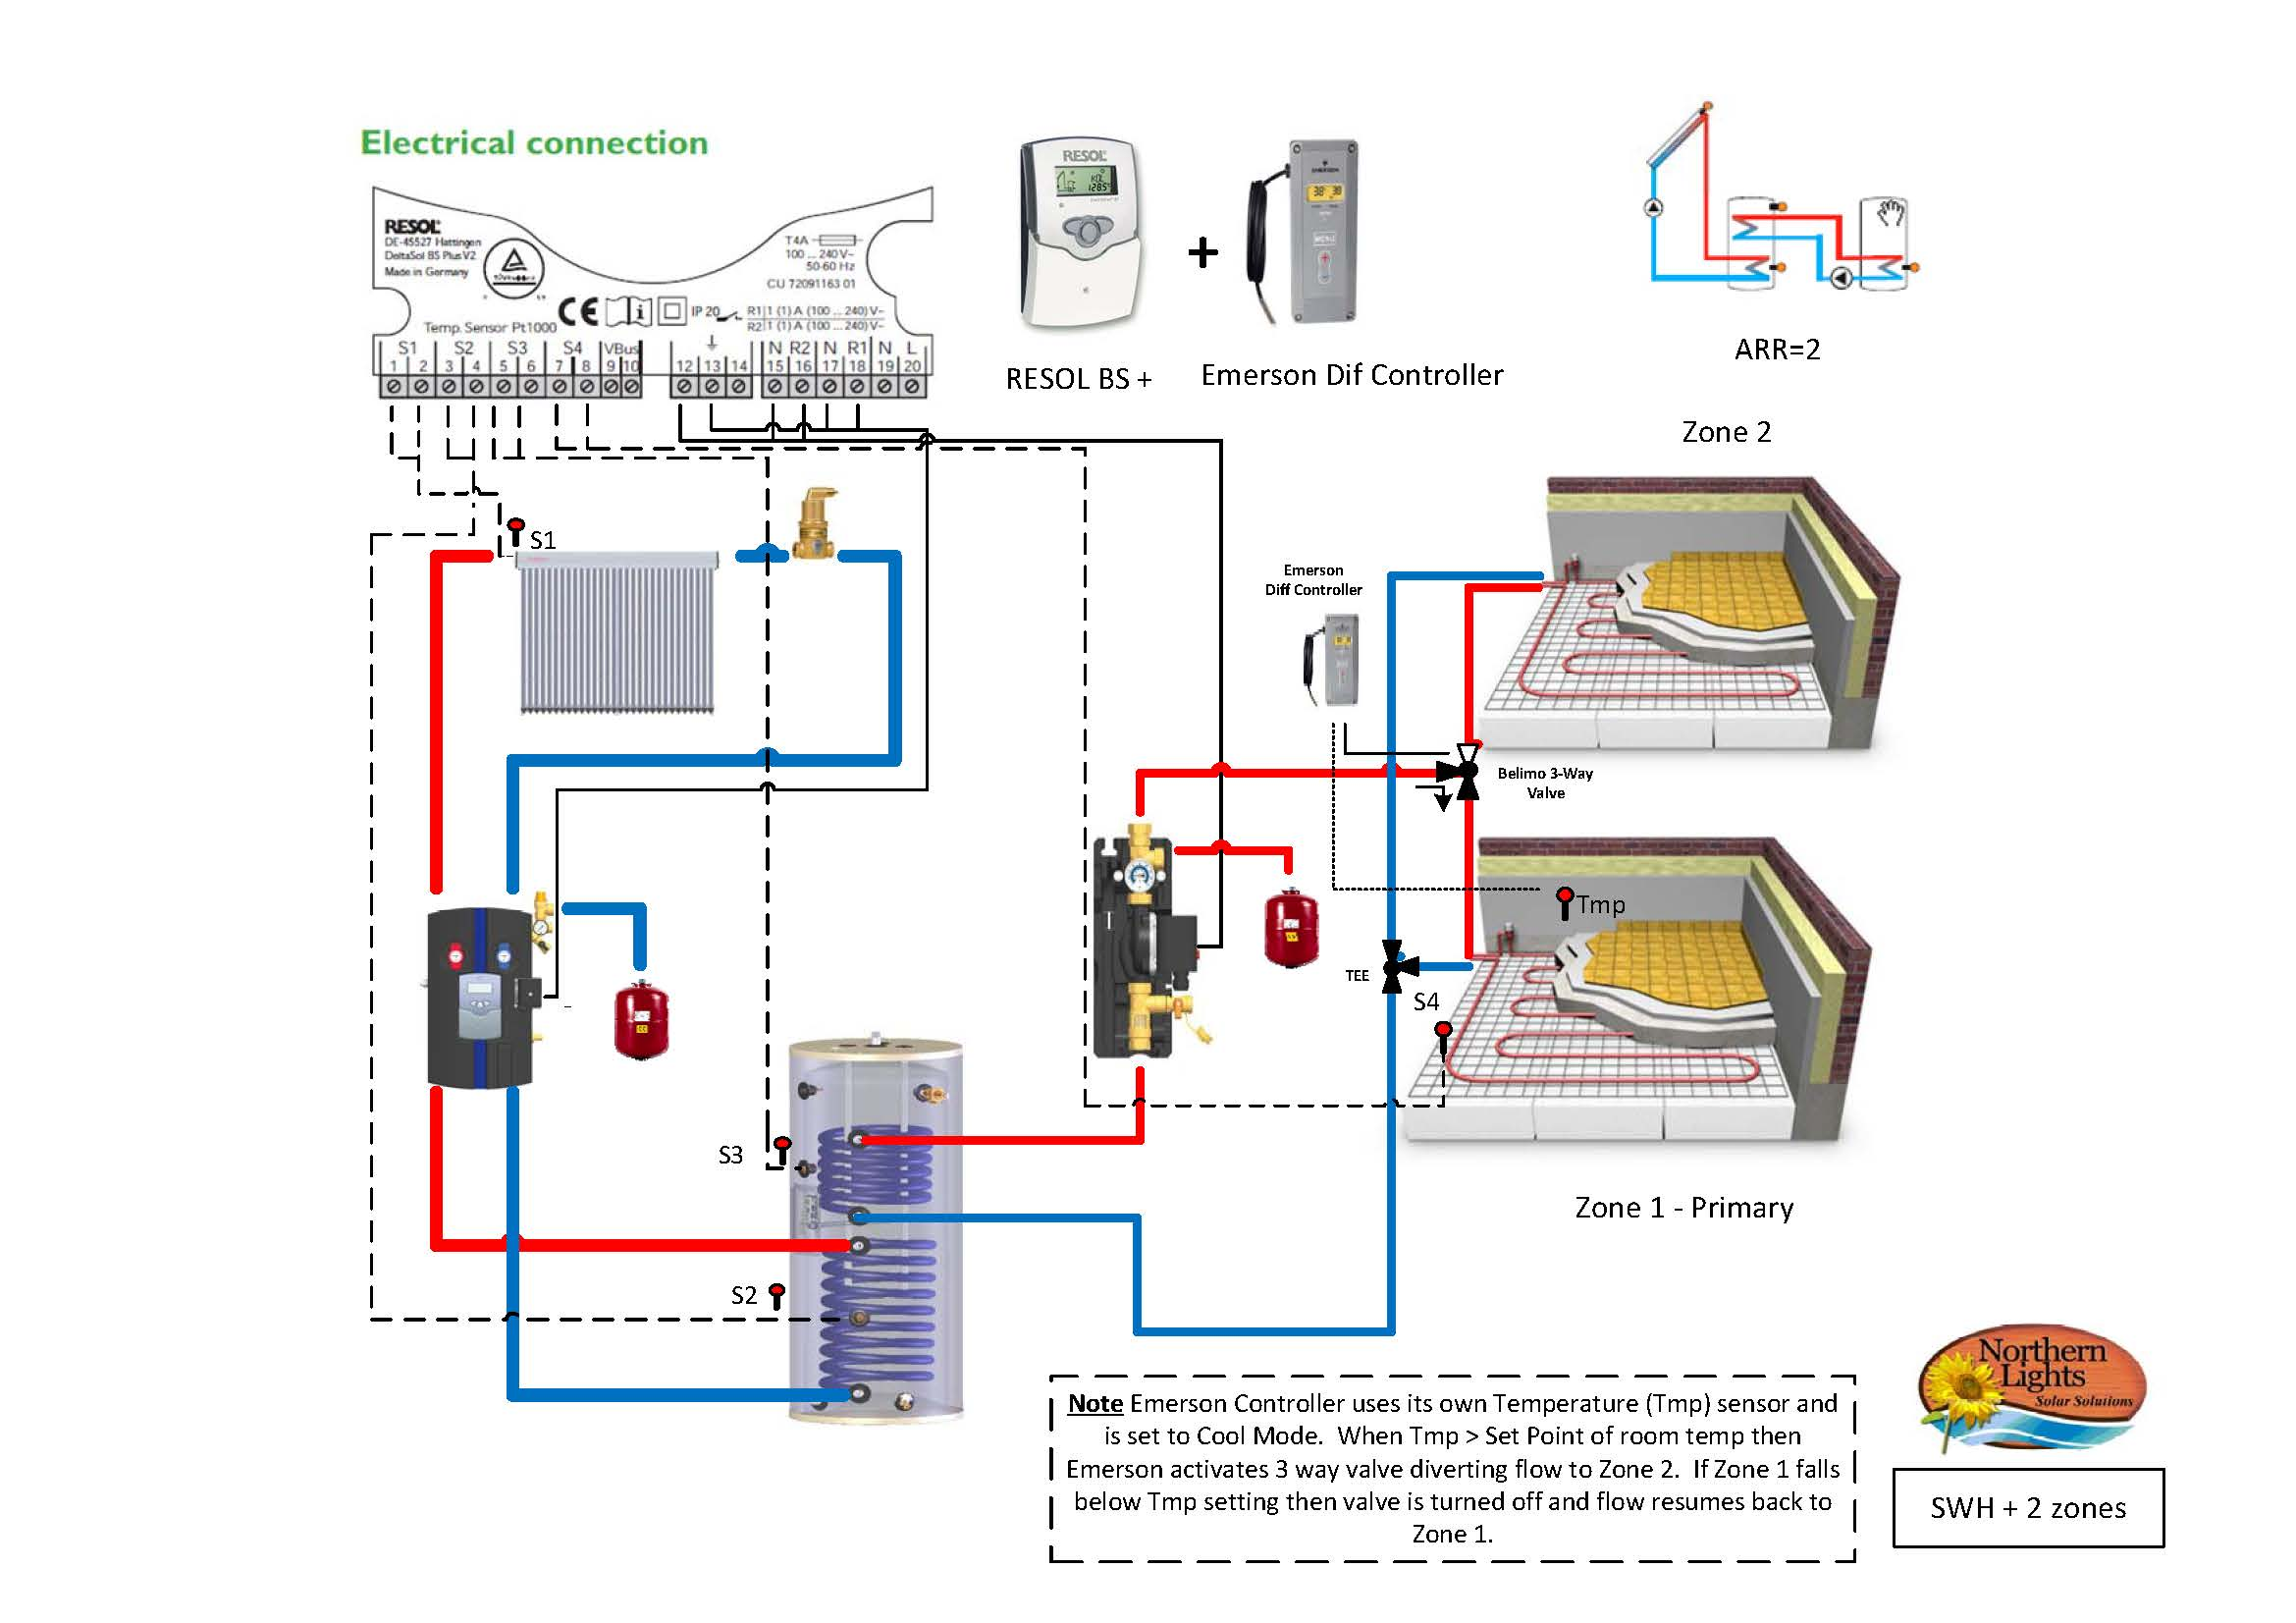 Crestron Wiring Diagrams Visio Free Diagram For You Electrical Series Ladder Cresnet Media Switcher